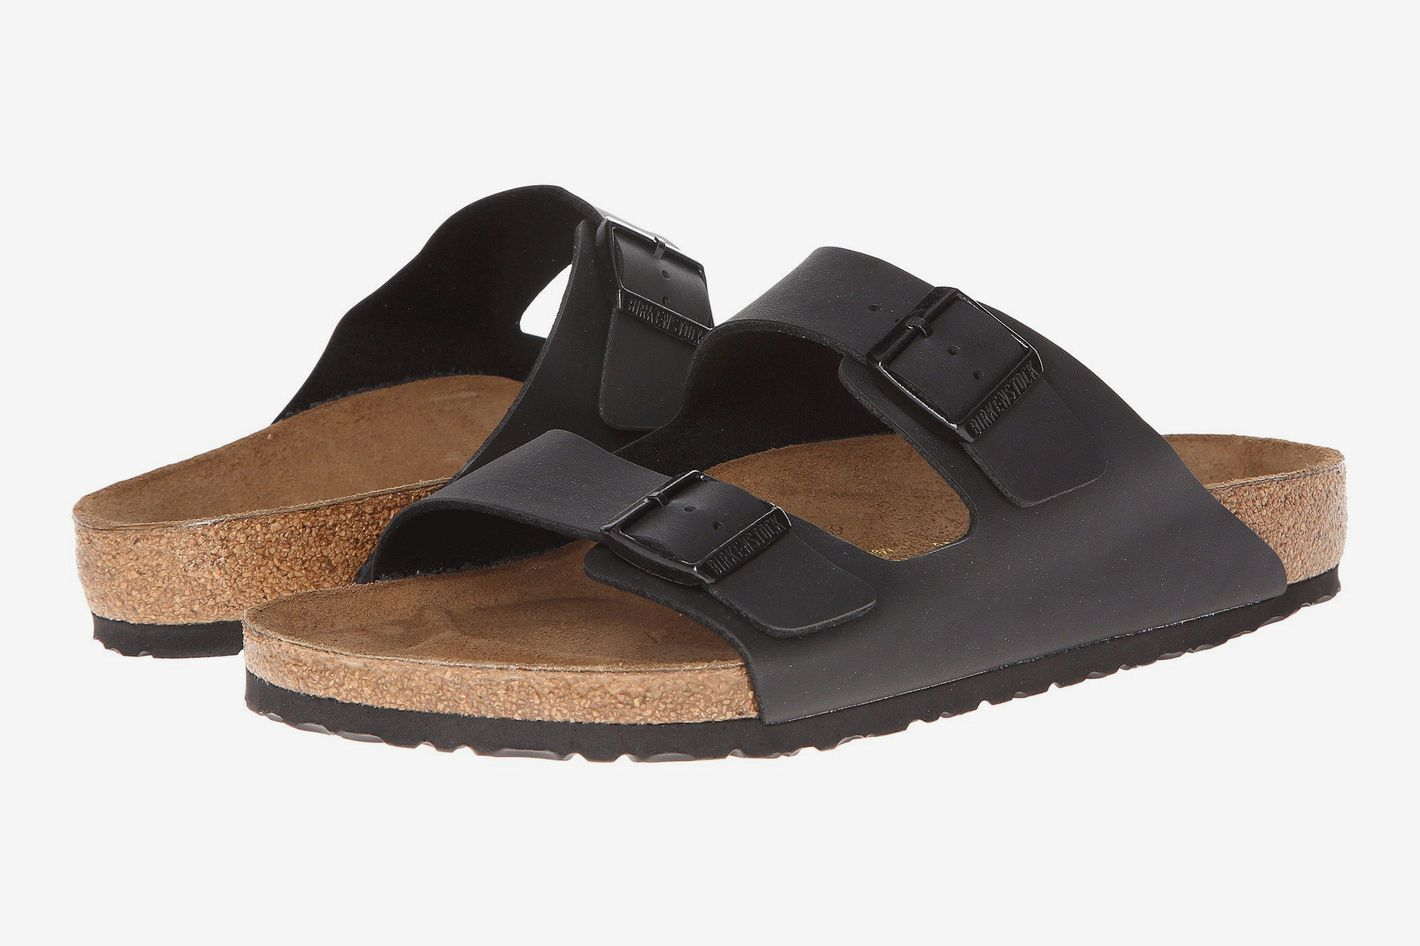 16b7b22e234 27 Birkenstocks for Men and Women 2018